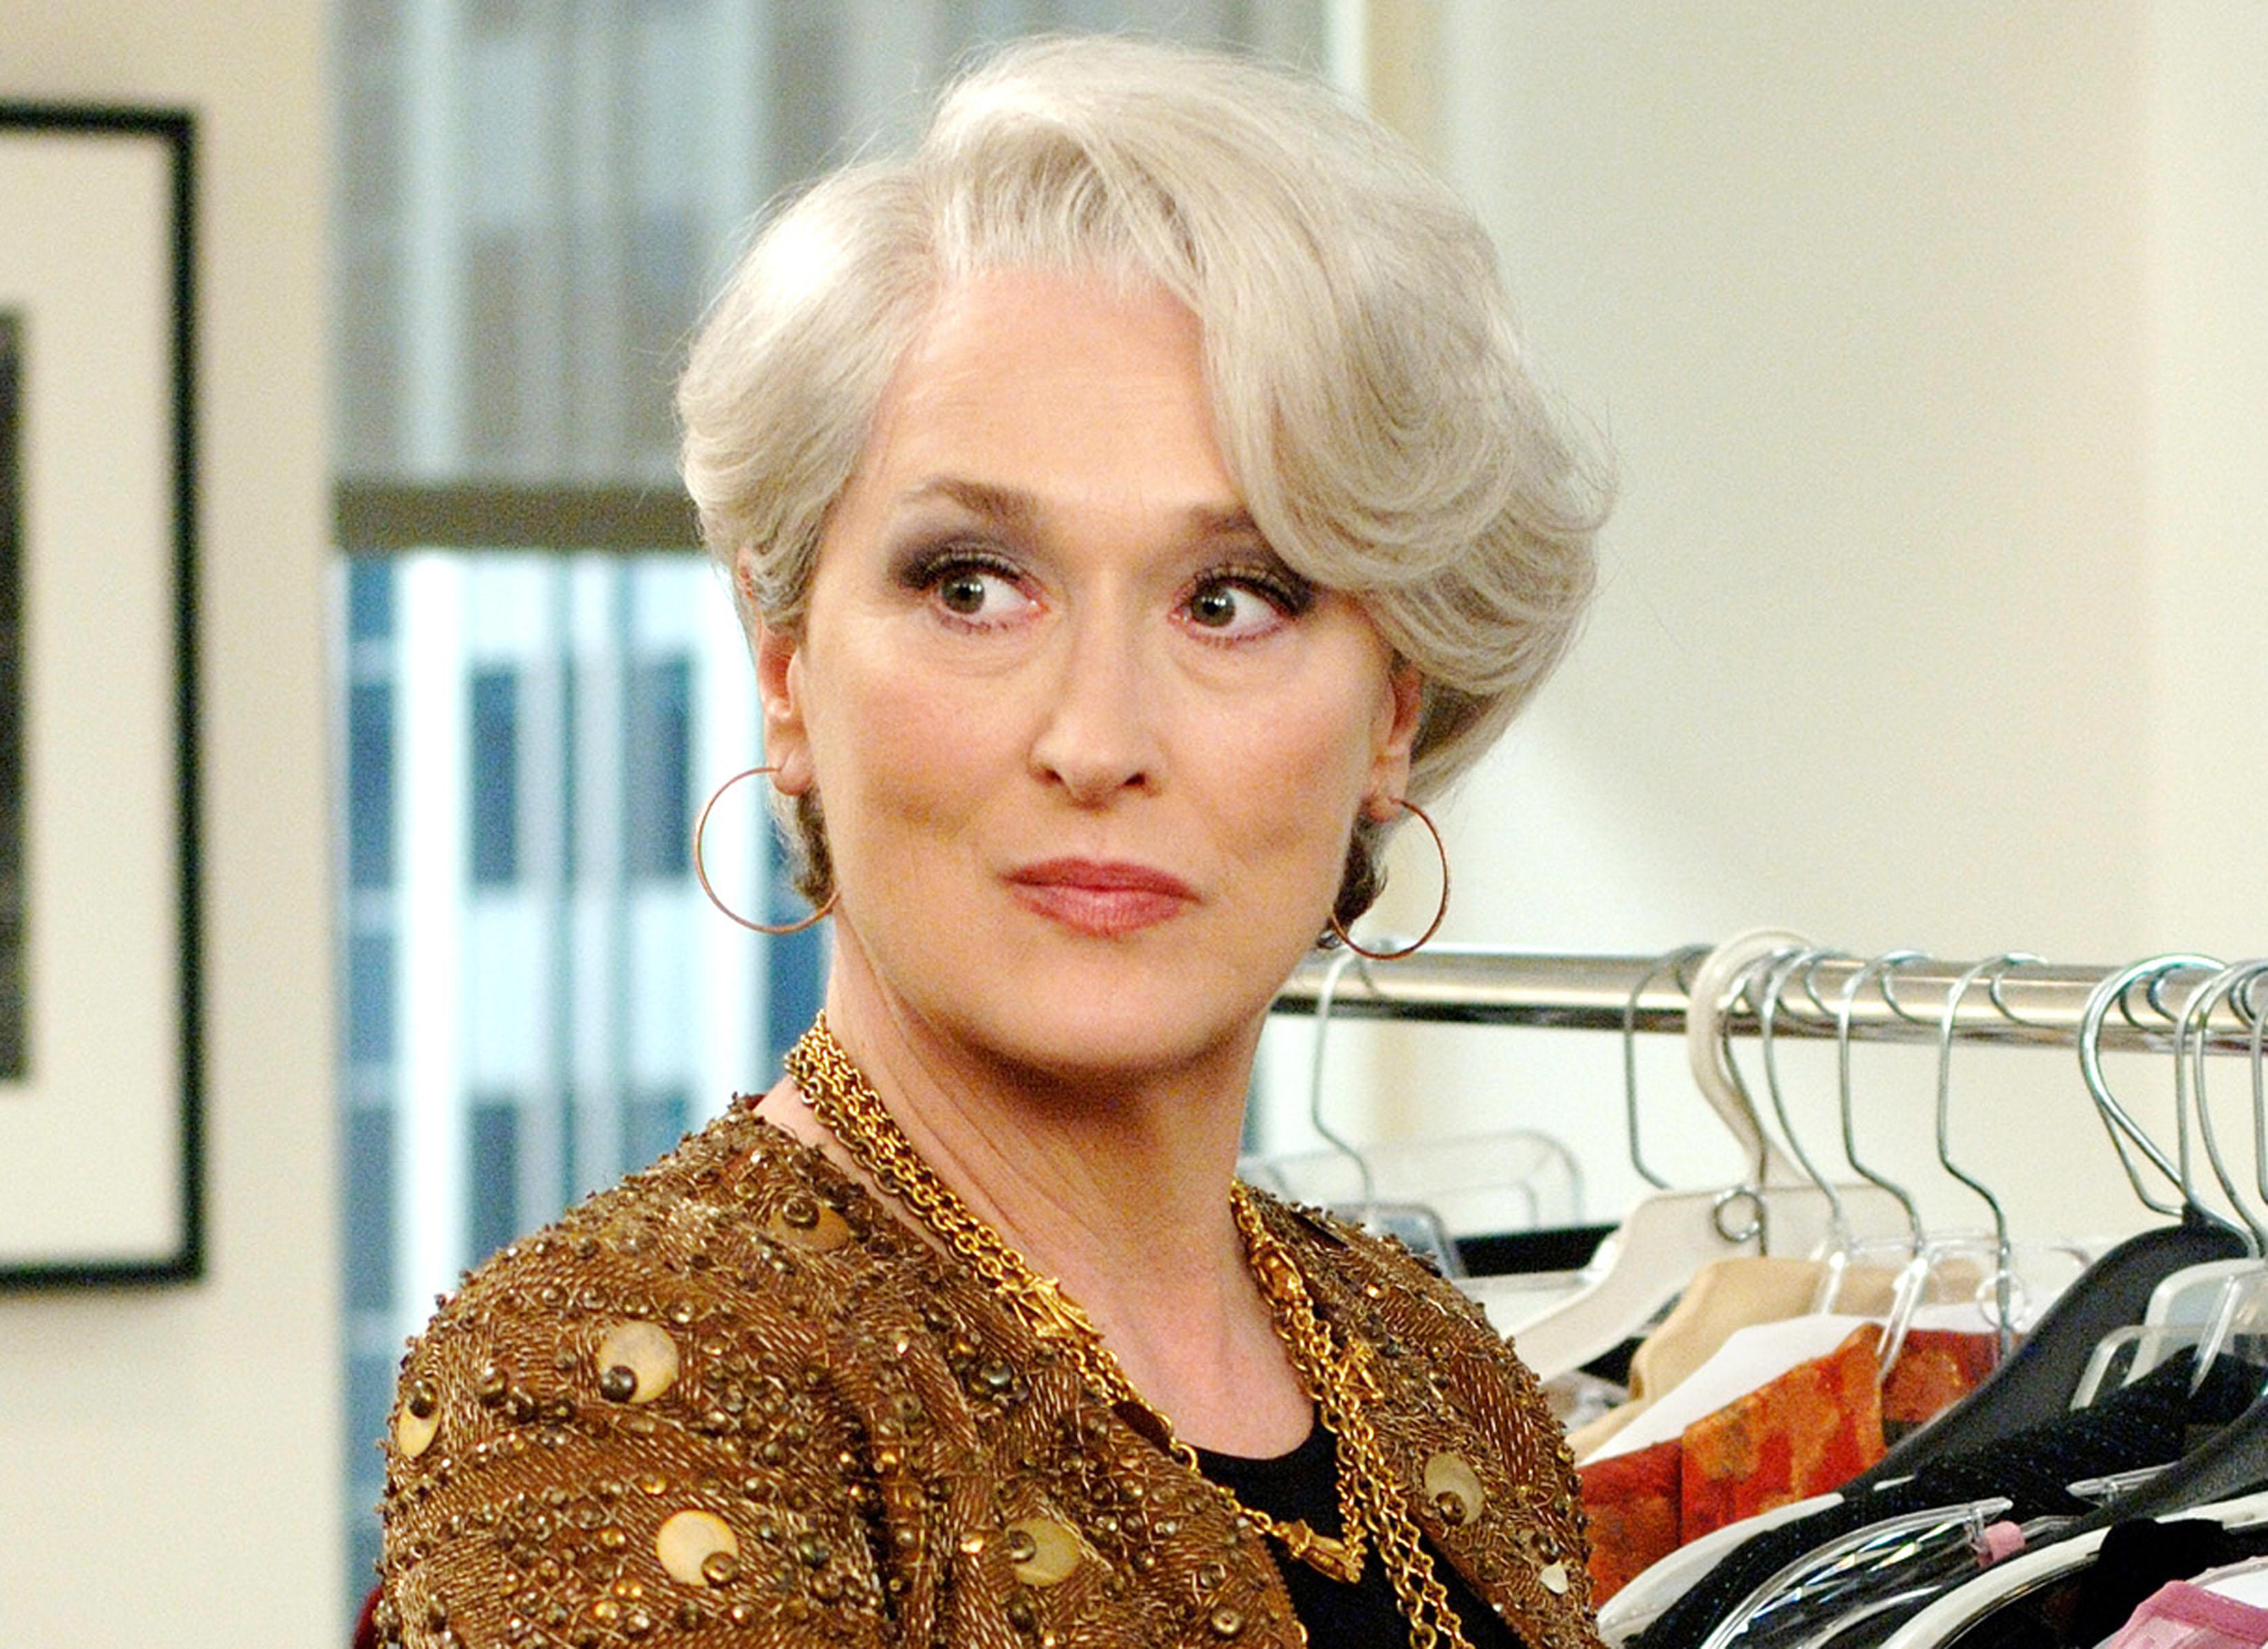 Everything I need to know, I learned from Meryl Streep